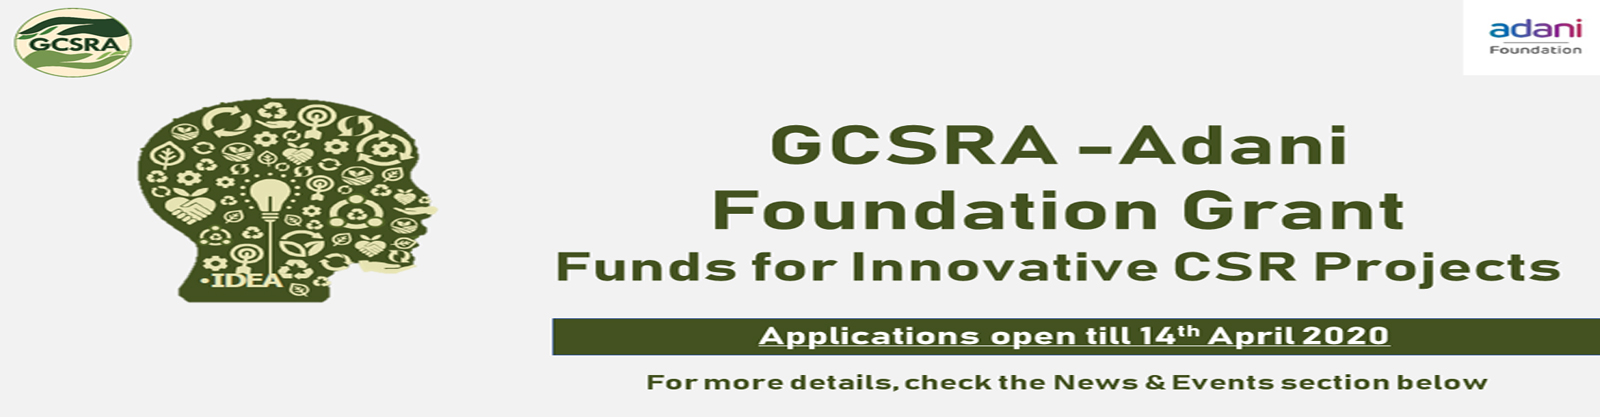 GCSRA-Adani Foundation Grant Funds for Innovative CSR Projects